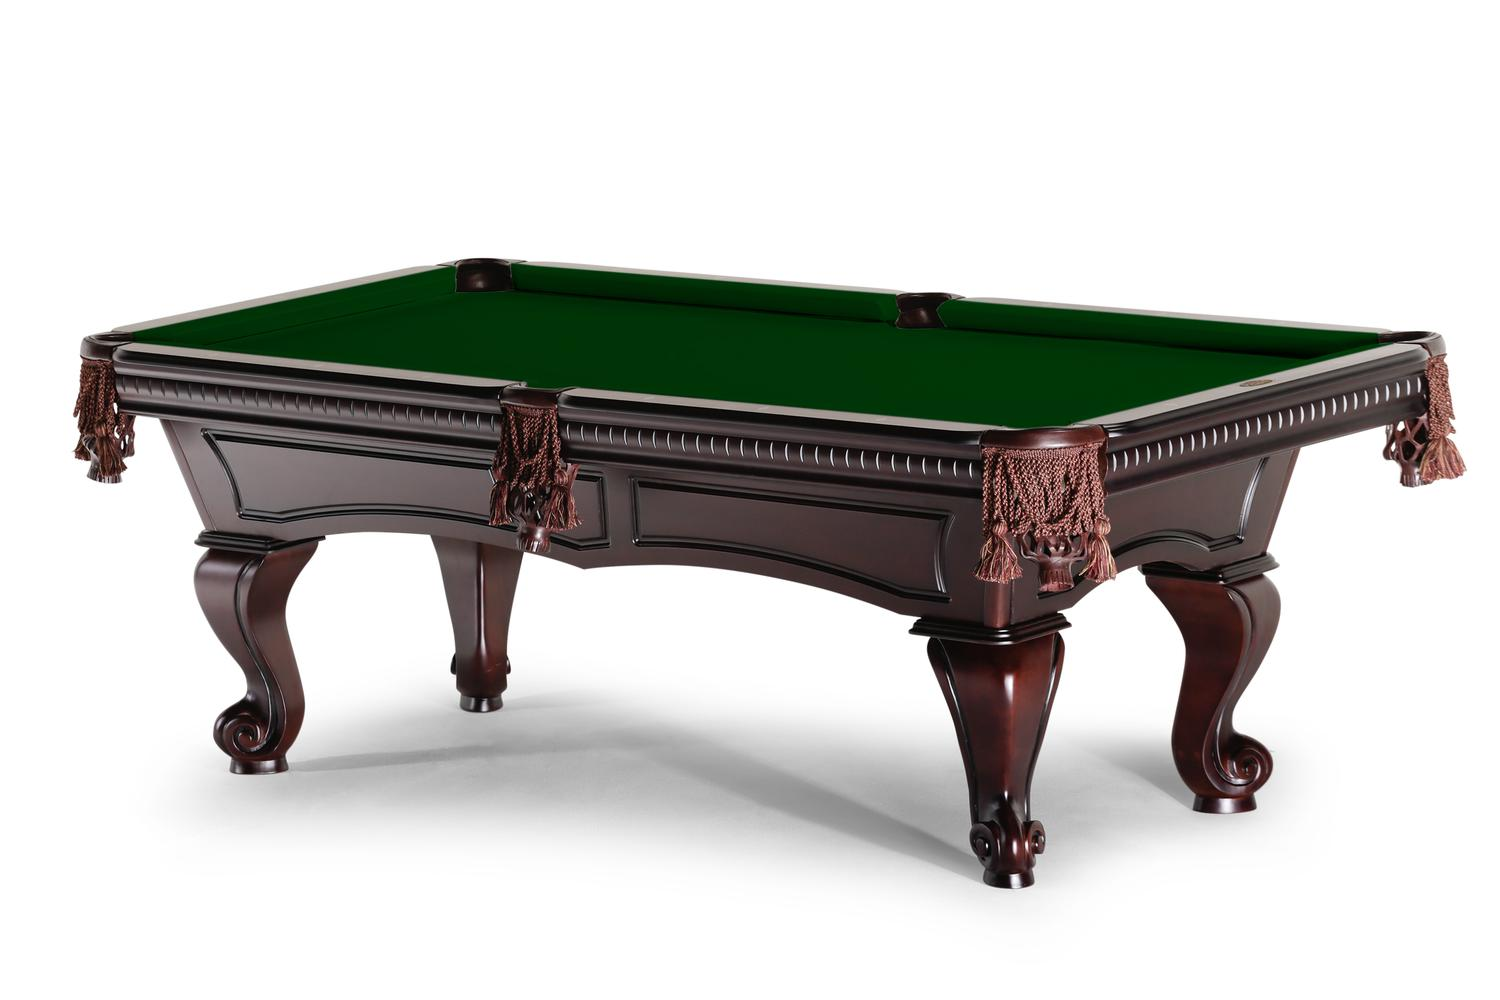 Pool tables pooltablesdirect spencer marston tuscany pool table greentooth Images